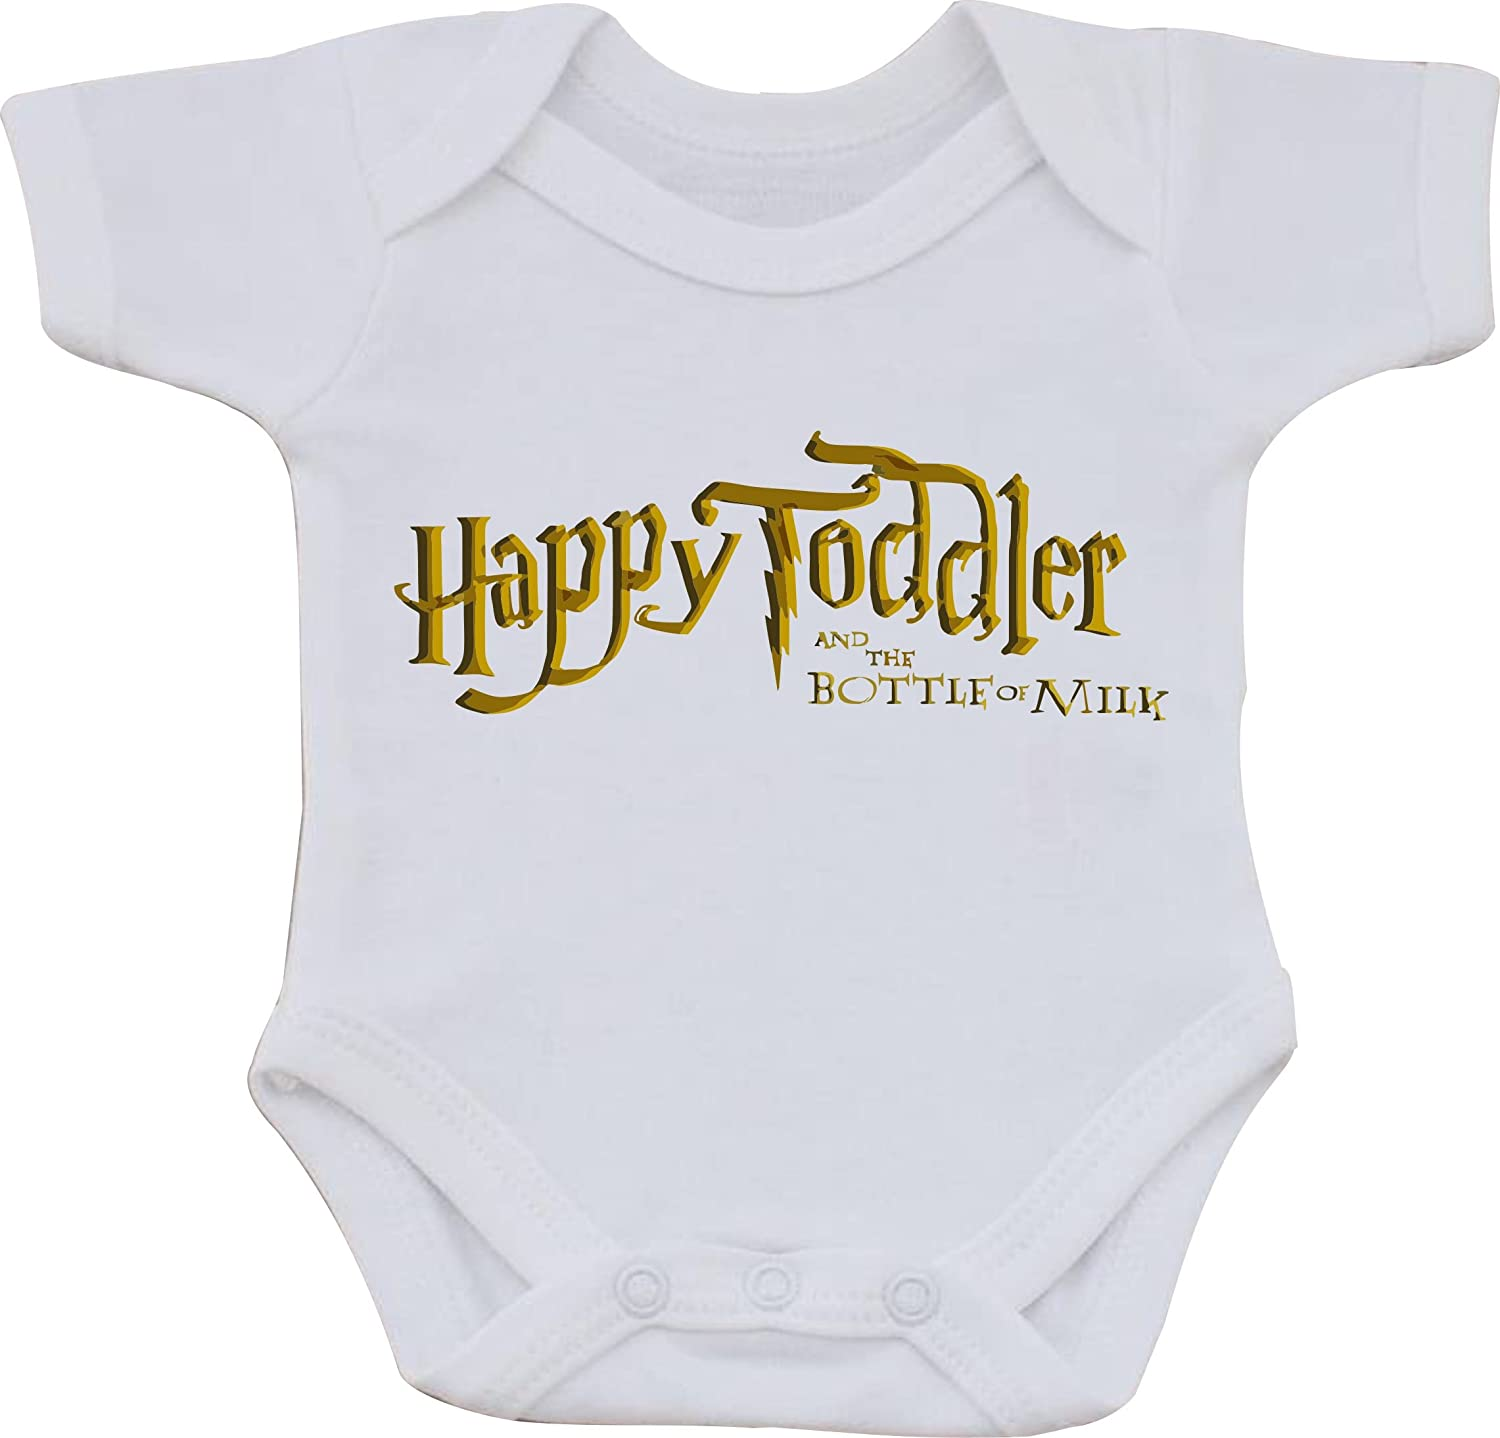 magic moments Happy Toddler and The Bottle Of Milk Harry Potter Full Color Funny Sublimation White Baby Vest OR Bib